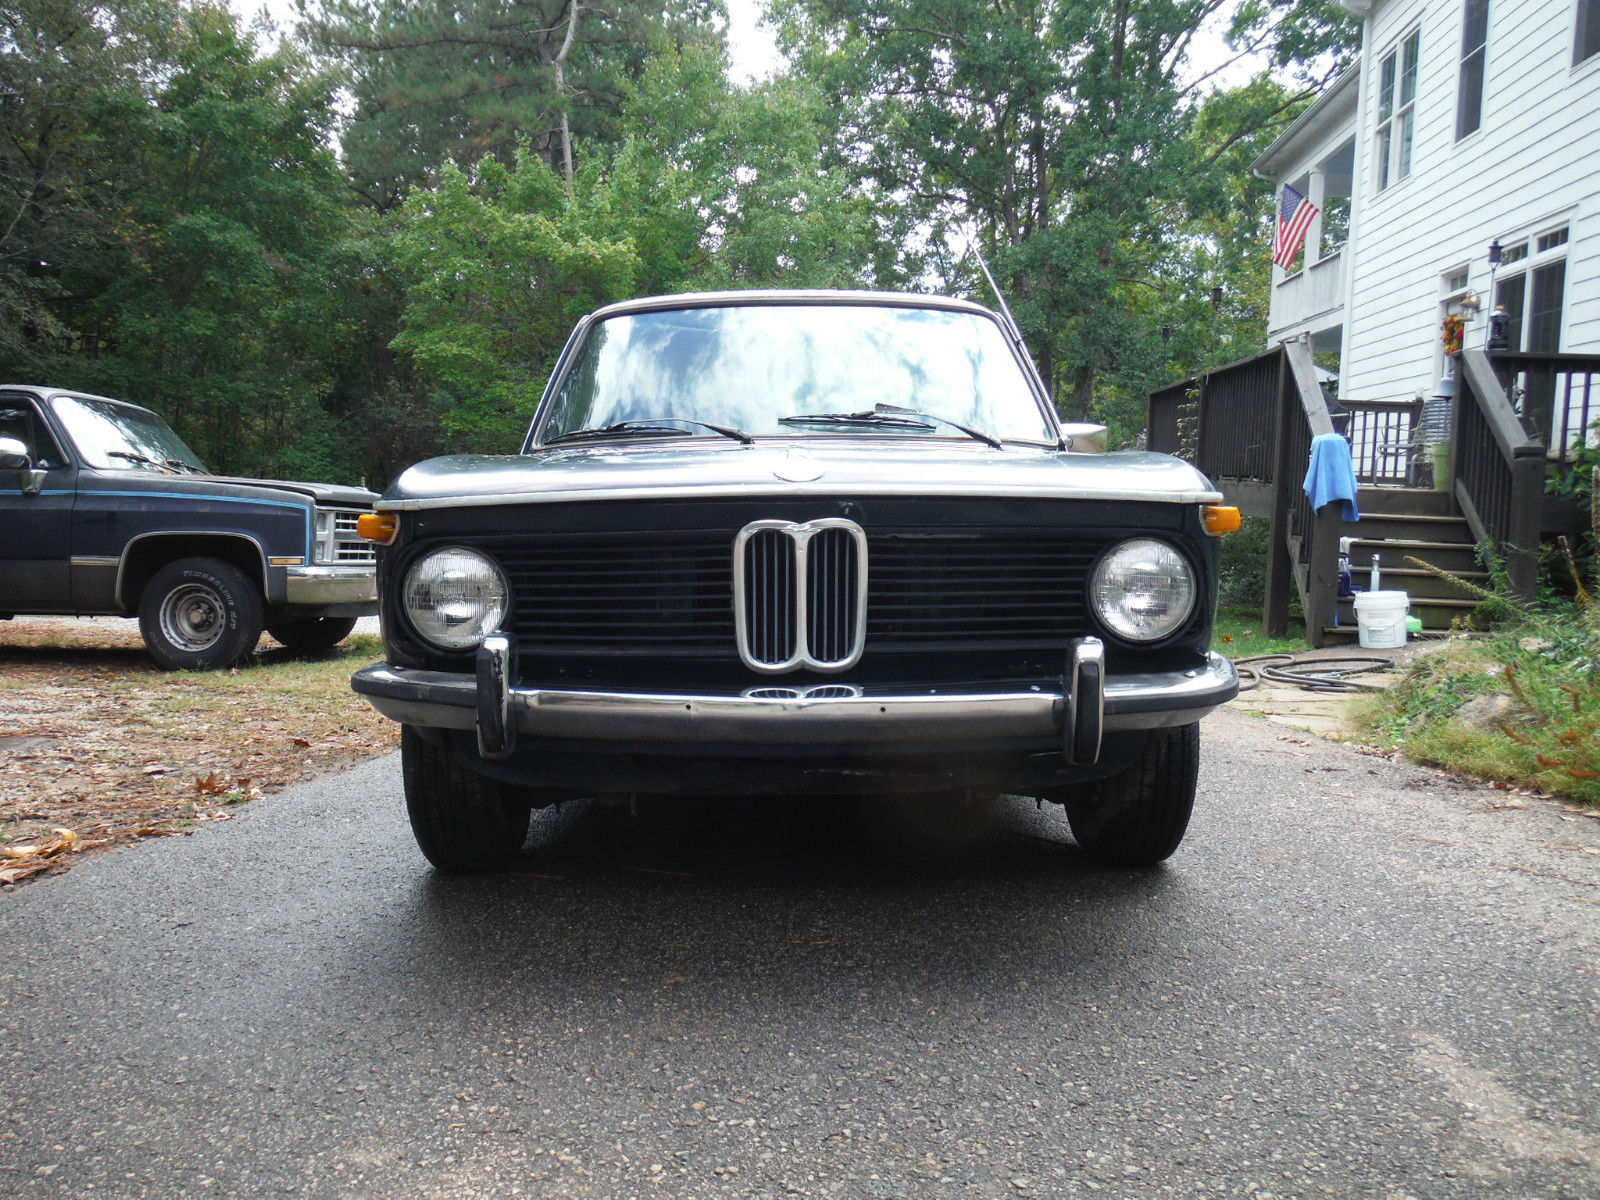 1976 Bmw 2002 4 Speed No Sunroof For Parts Or Restoration